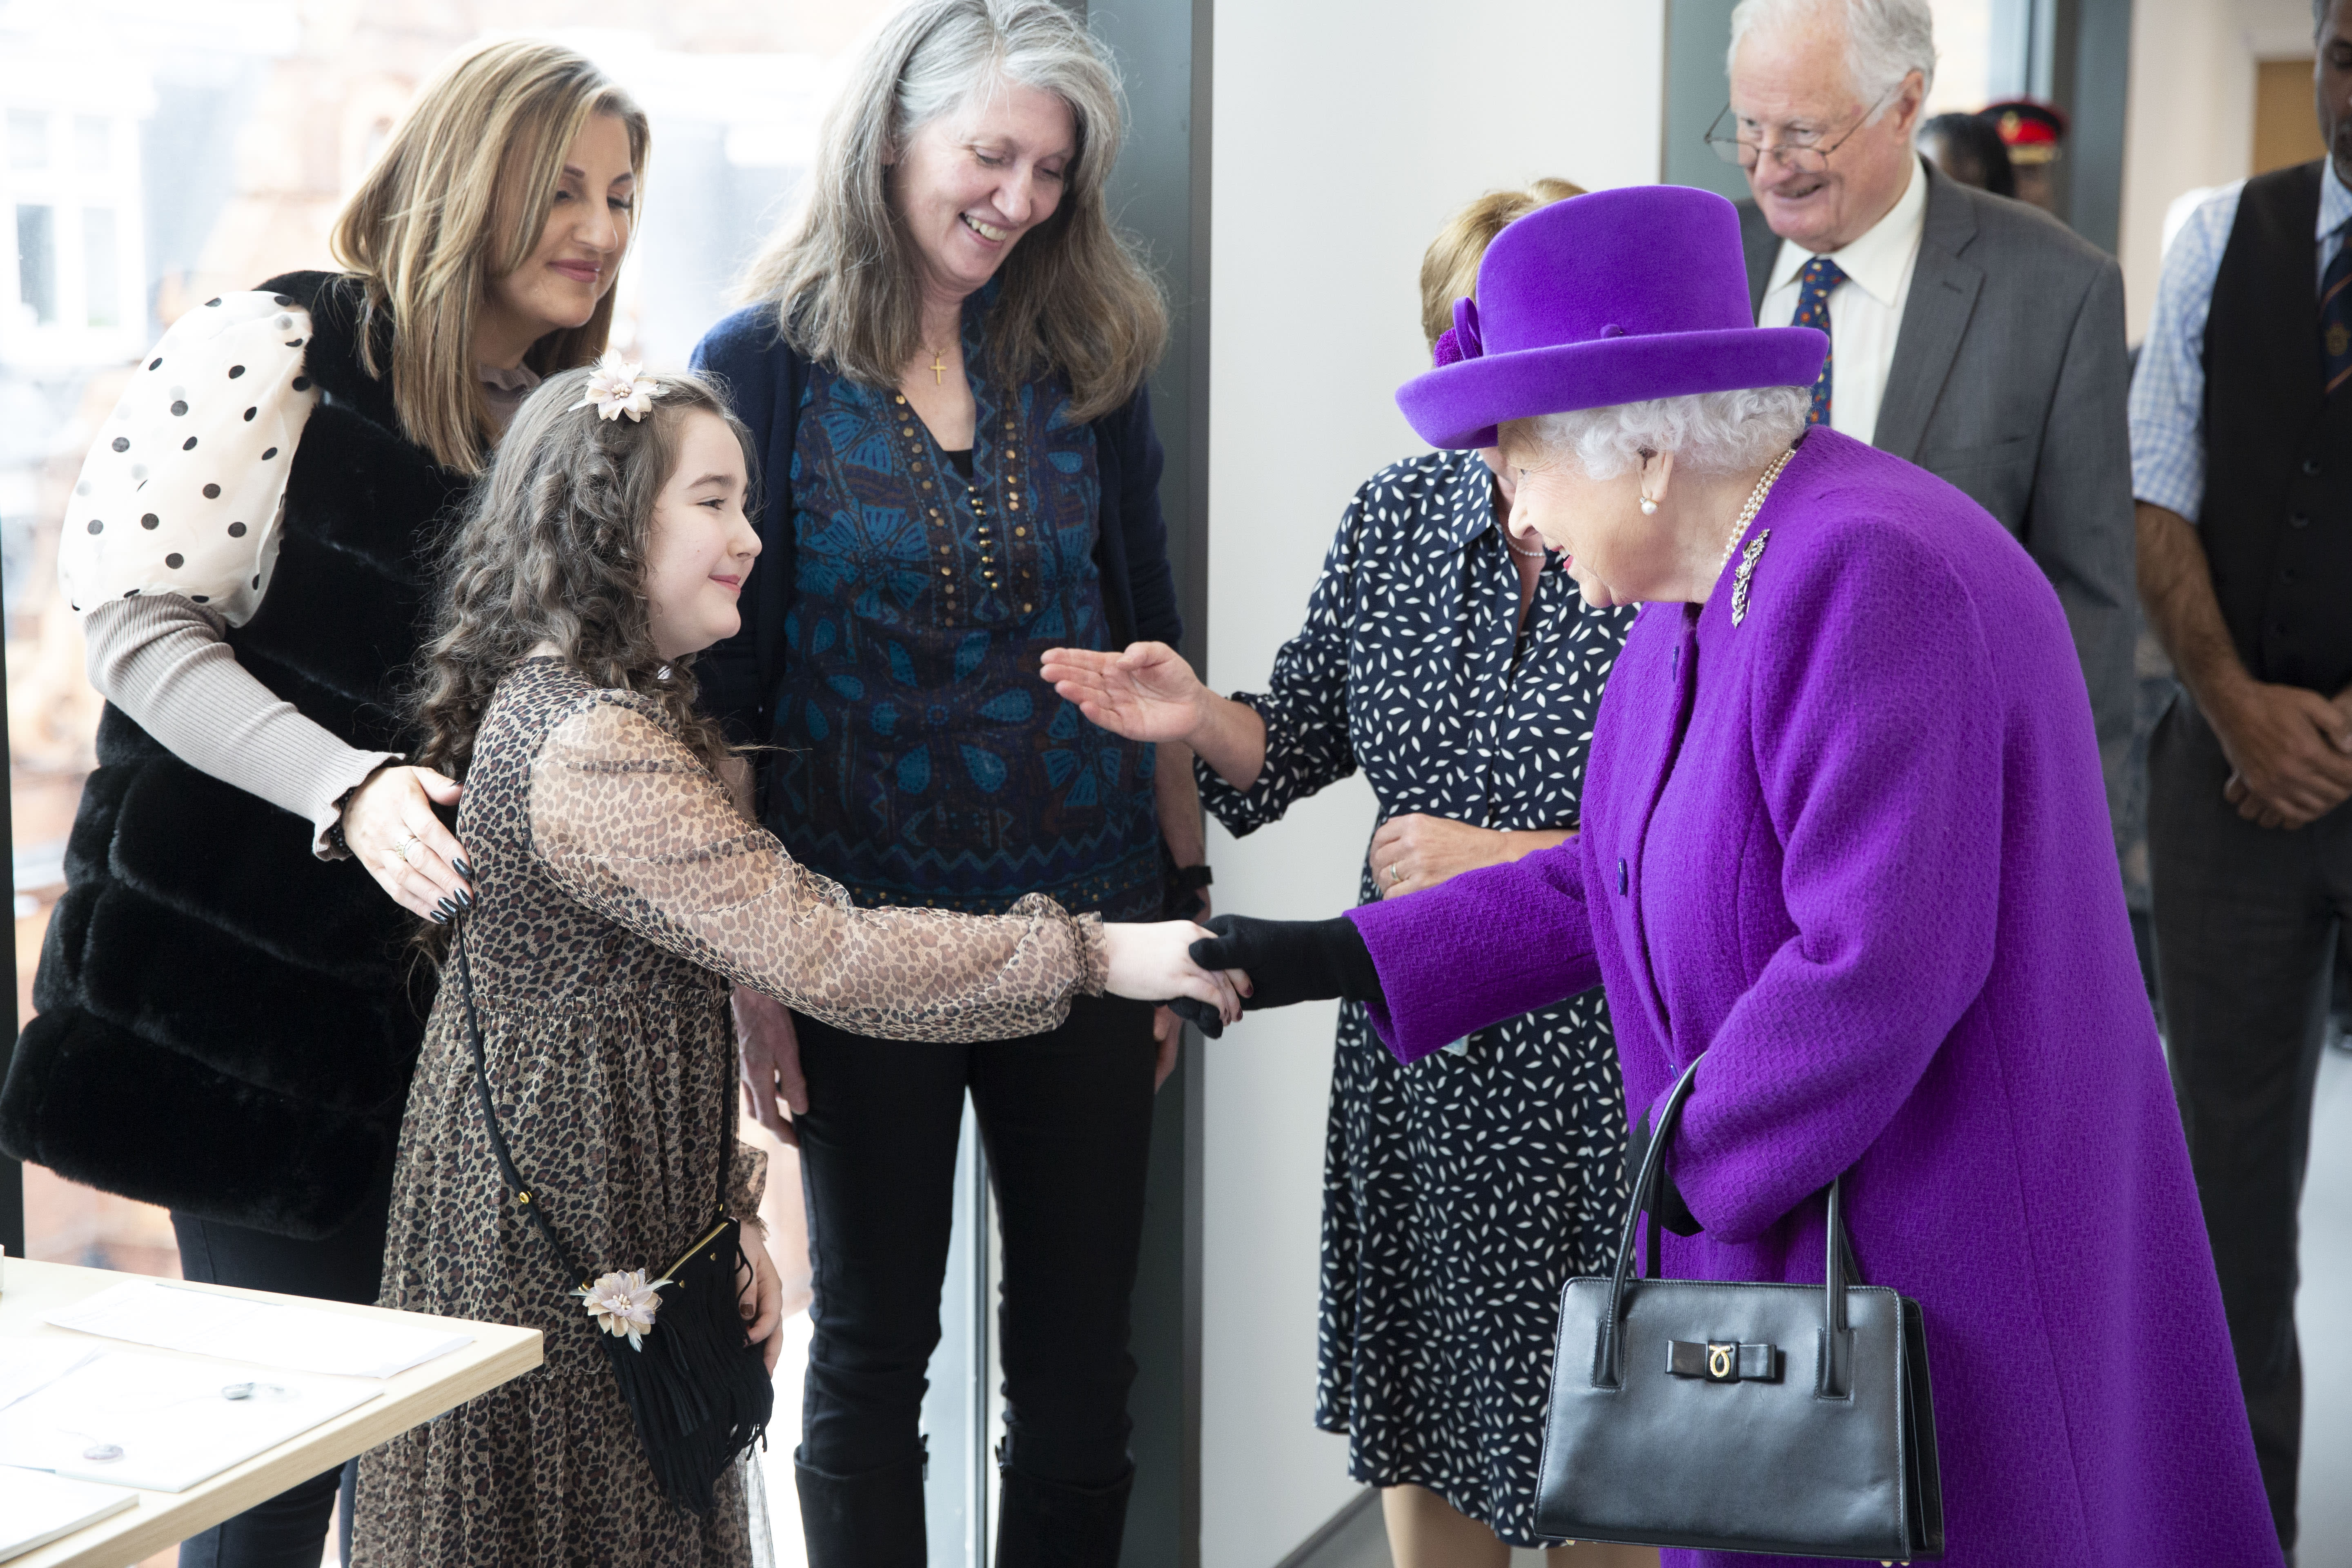 LONDON, ENGLAND - FEBRUARY 19: Queen Elizabeth II meets Lily Conkan, aged 8, who is having braces fitted, as she opens the new premises of the Royal National ENT and Eastman Dental Hospital on February 19, 2020 in London, England. (Photo by Heathcliff O'Malley - WPA Pool/Getty Images)